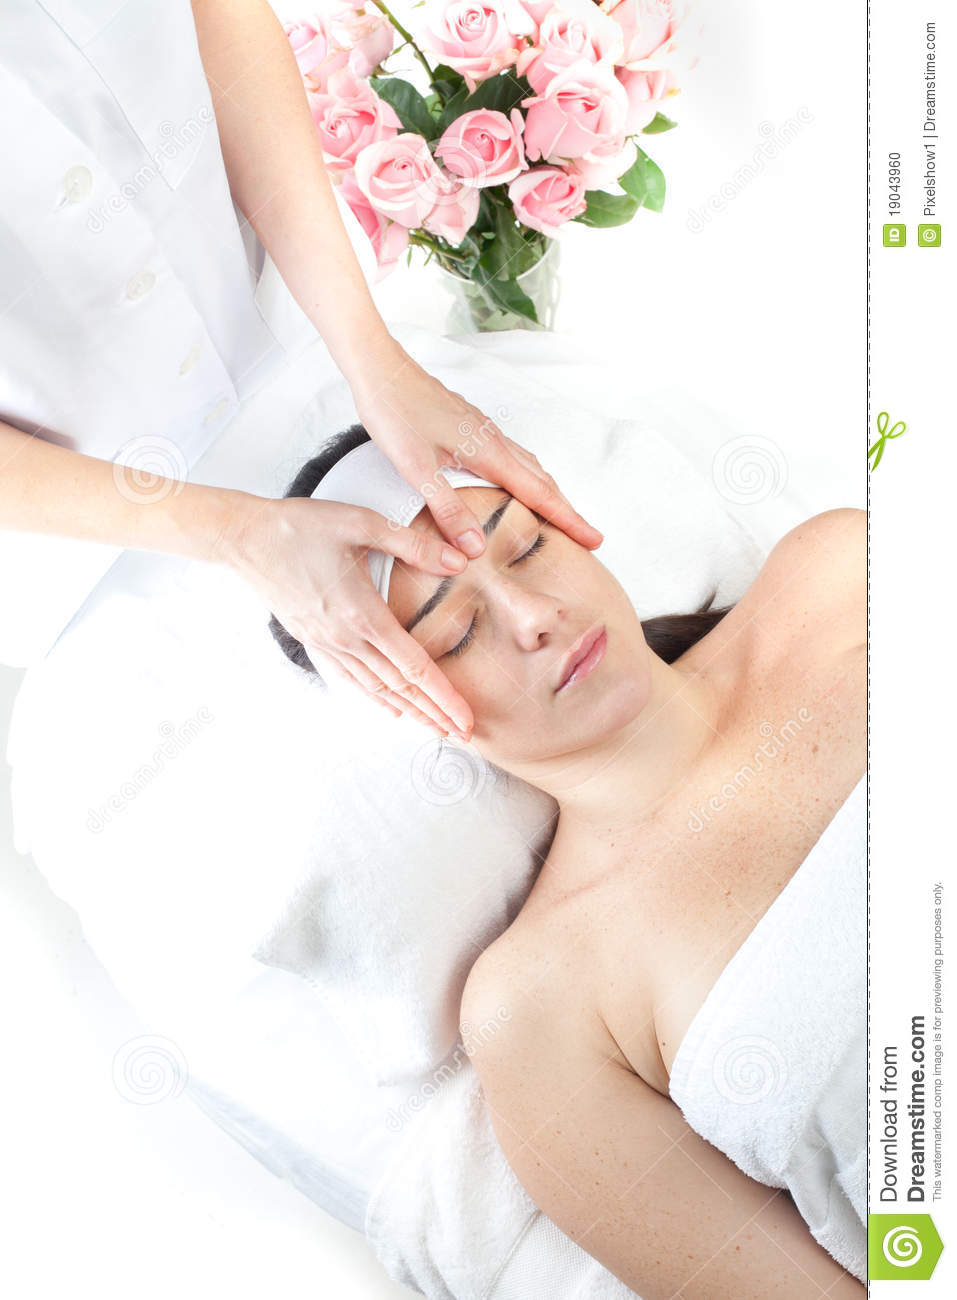 More similar stock images of ` Massage spa. Facial treatment. `